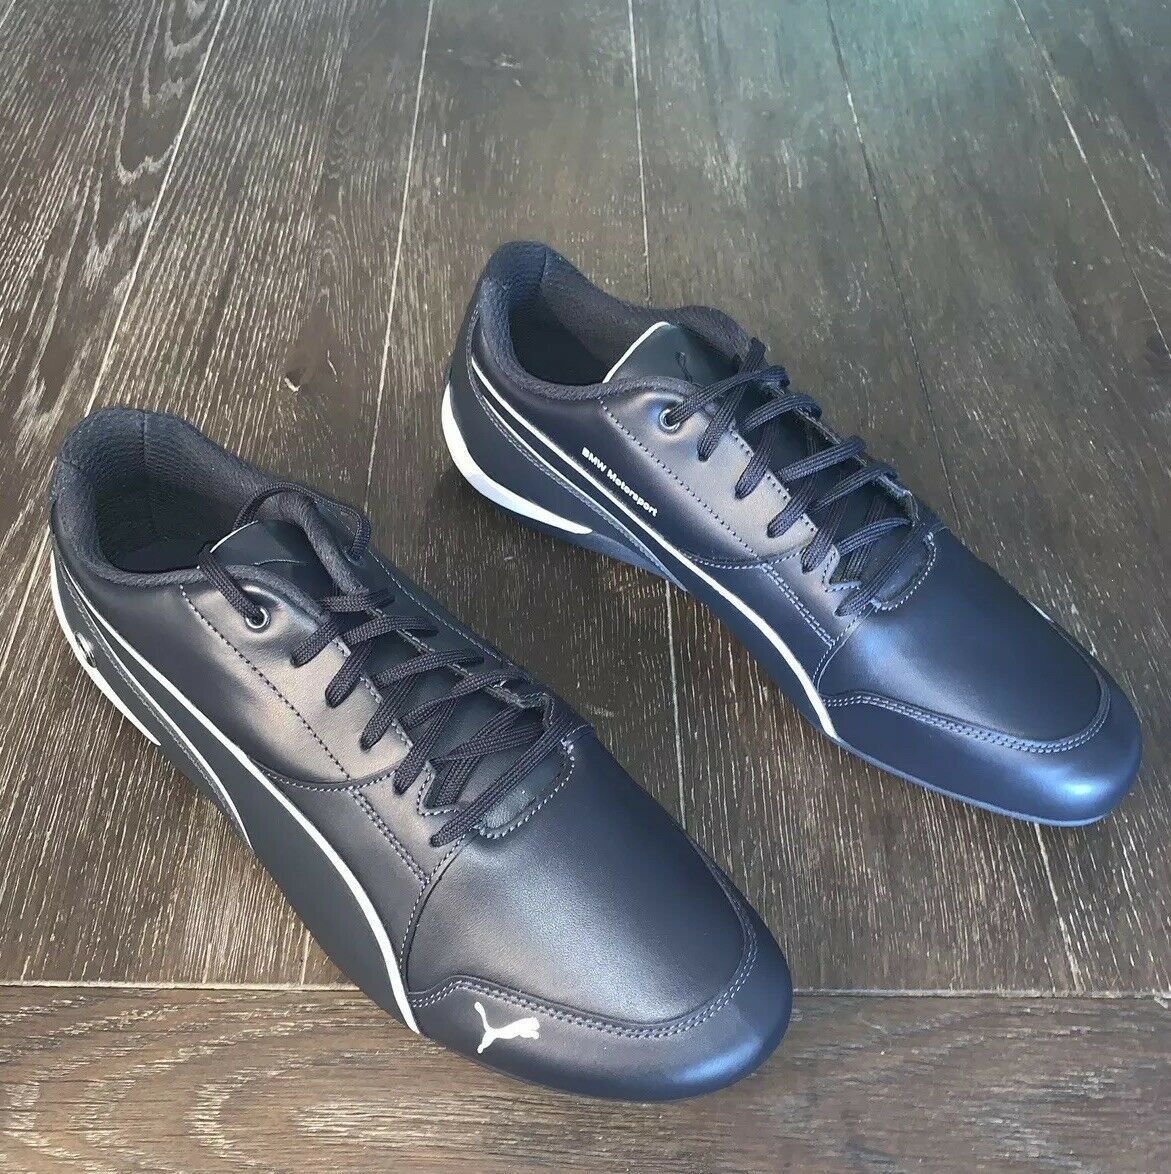 NEW PUMA BMW MS DRIFT CAT 7 LEATHER MEN'S SHOES SIZE 11 blueE